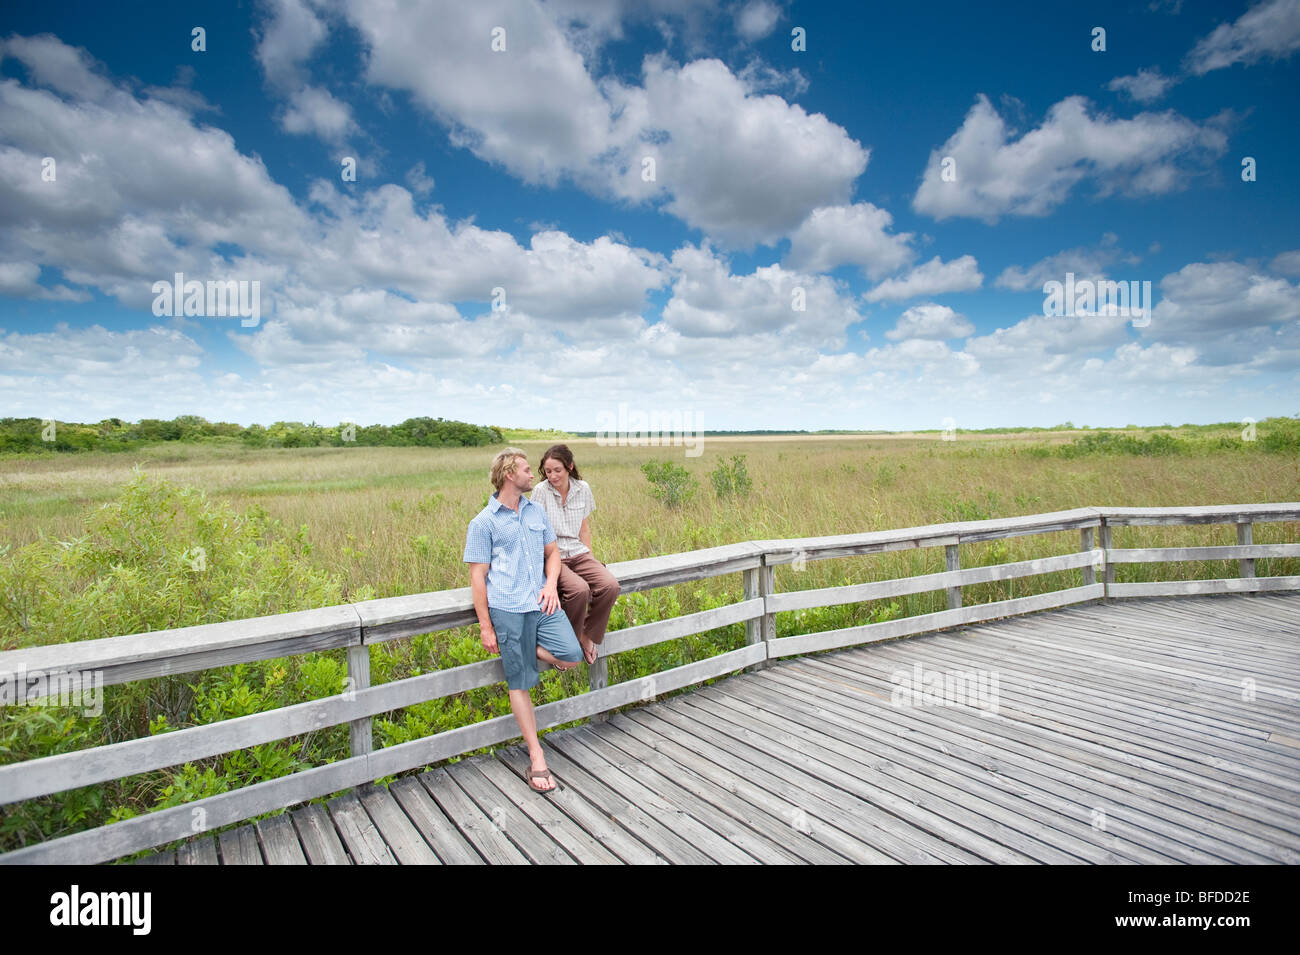 A couple pauses during a hike to lean against a wooden railing in Everglades National Park, Florida. - Stock Image